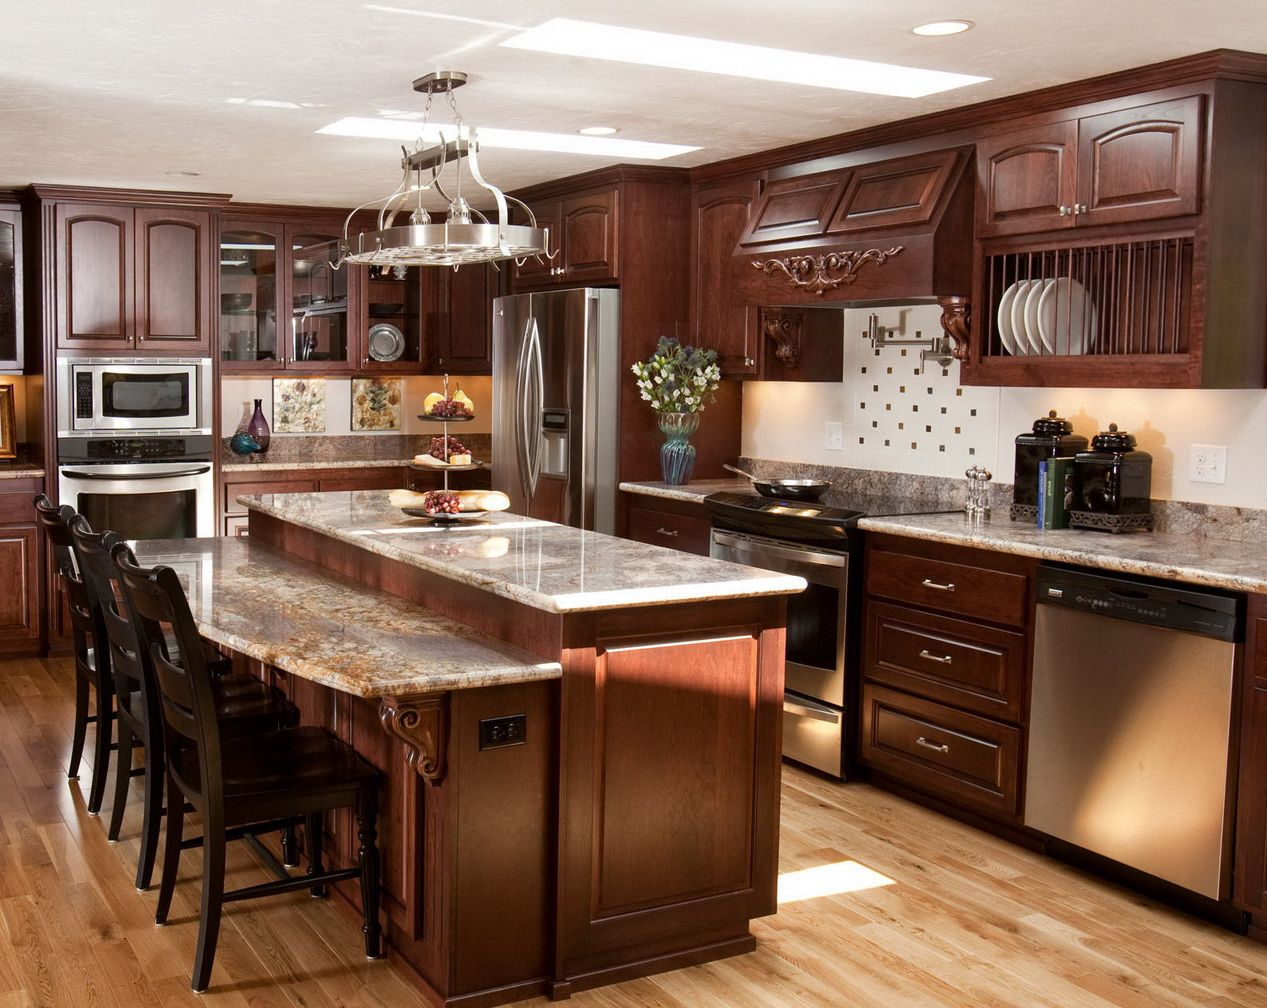 Kitchen Decorating Custom Wooden Italian Kitchen Decor  Kitchen Decorations Ideas Decorating Inspiration